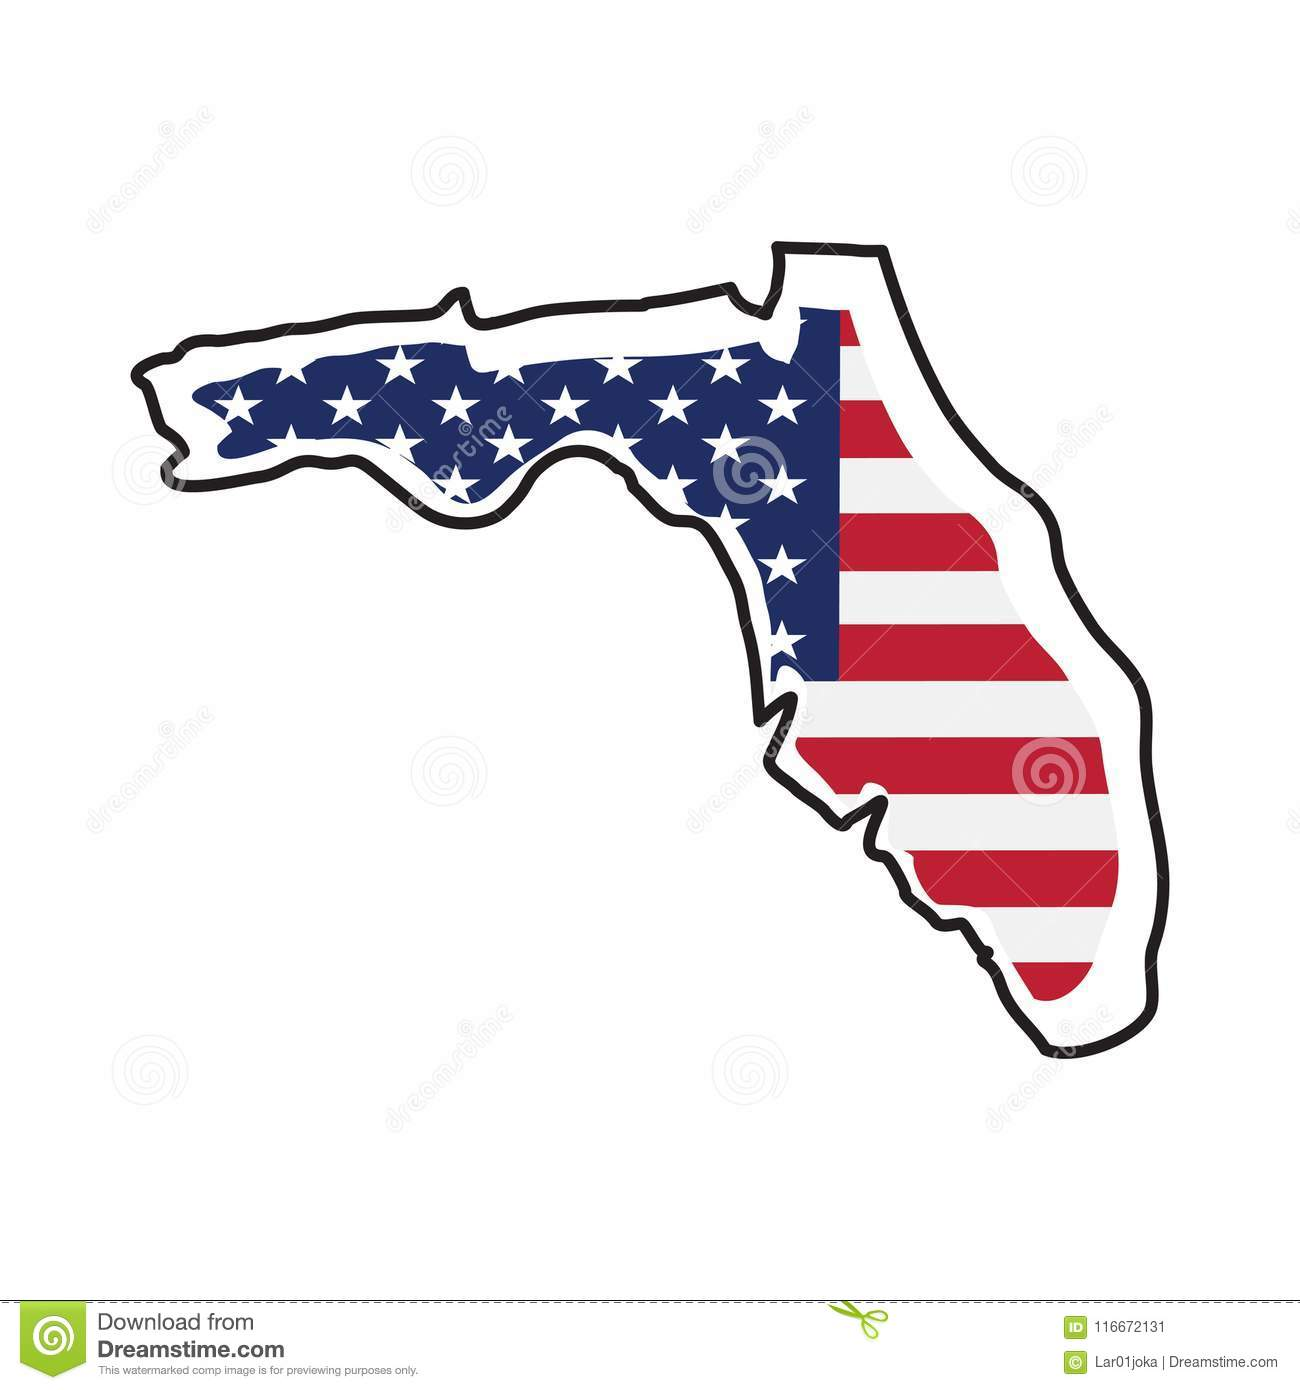 Florida Geography Map.Isolated Map Of The State Of Florida Stock Vector Illustration Of